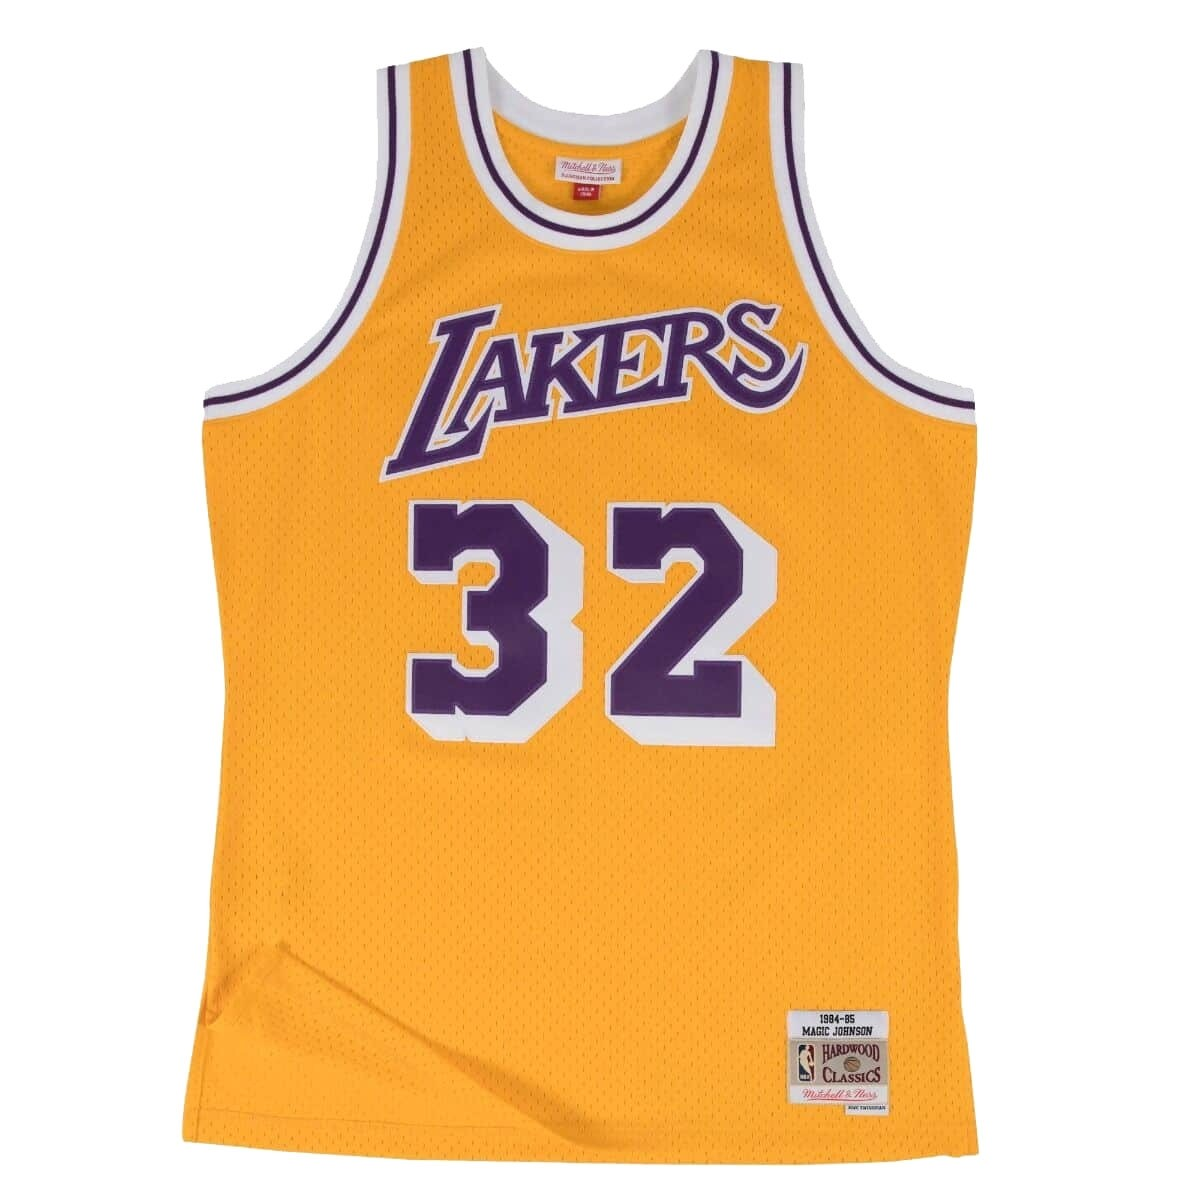 Mitchell & Ness Johnson Swingman Jersey Away 'Lakers'